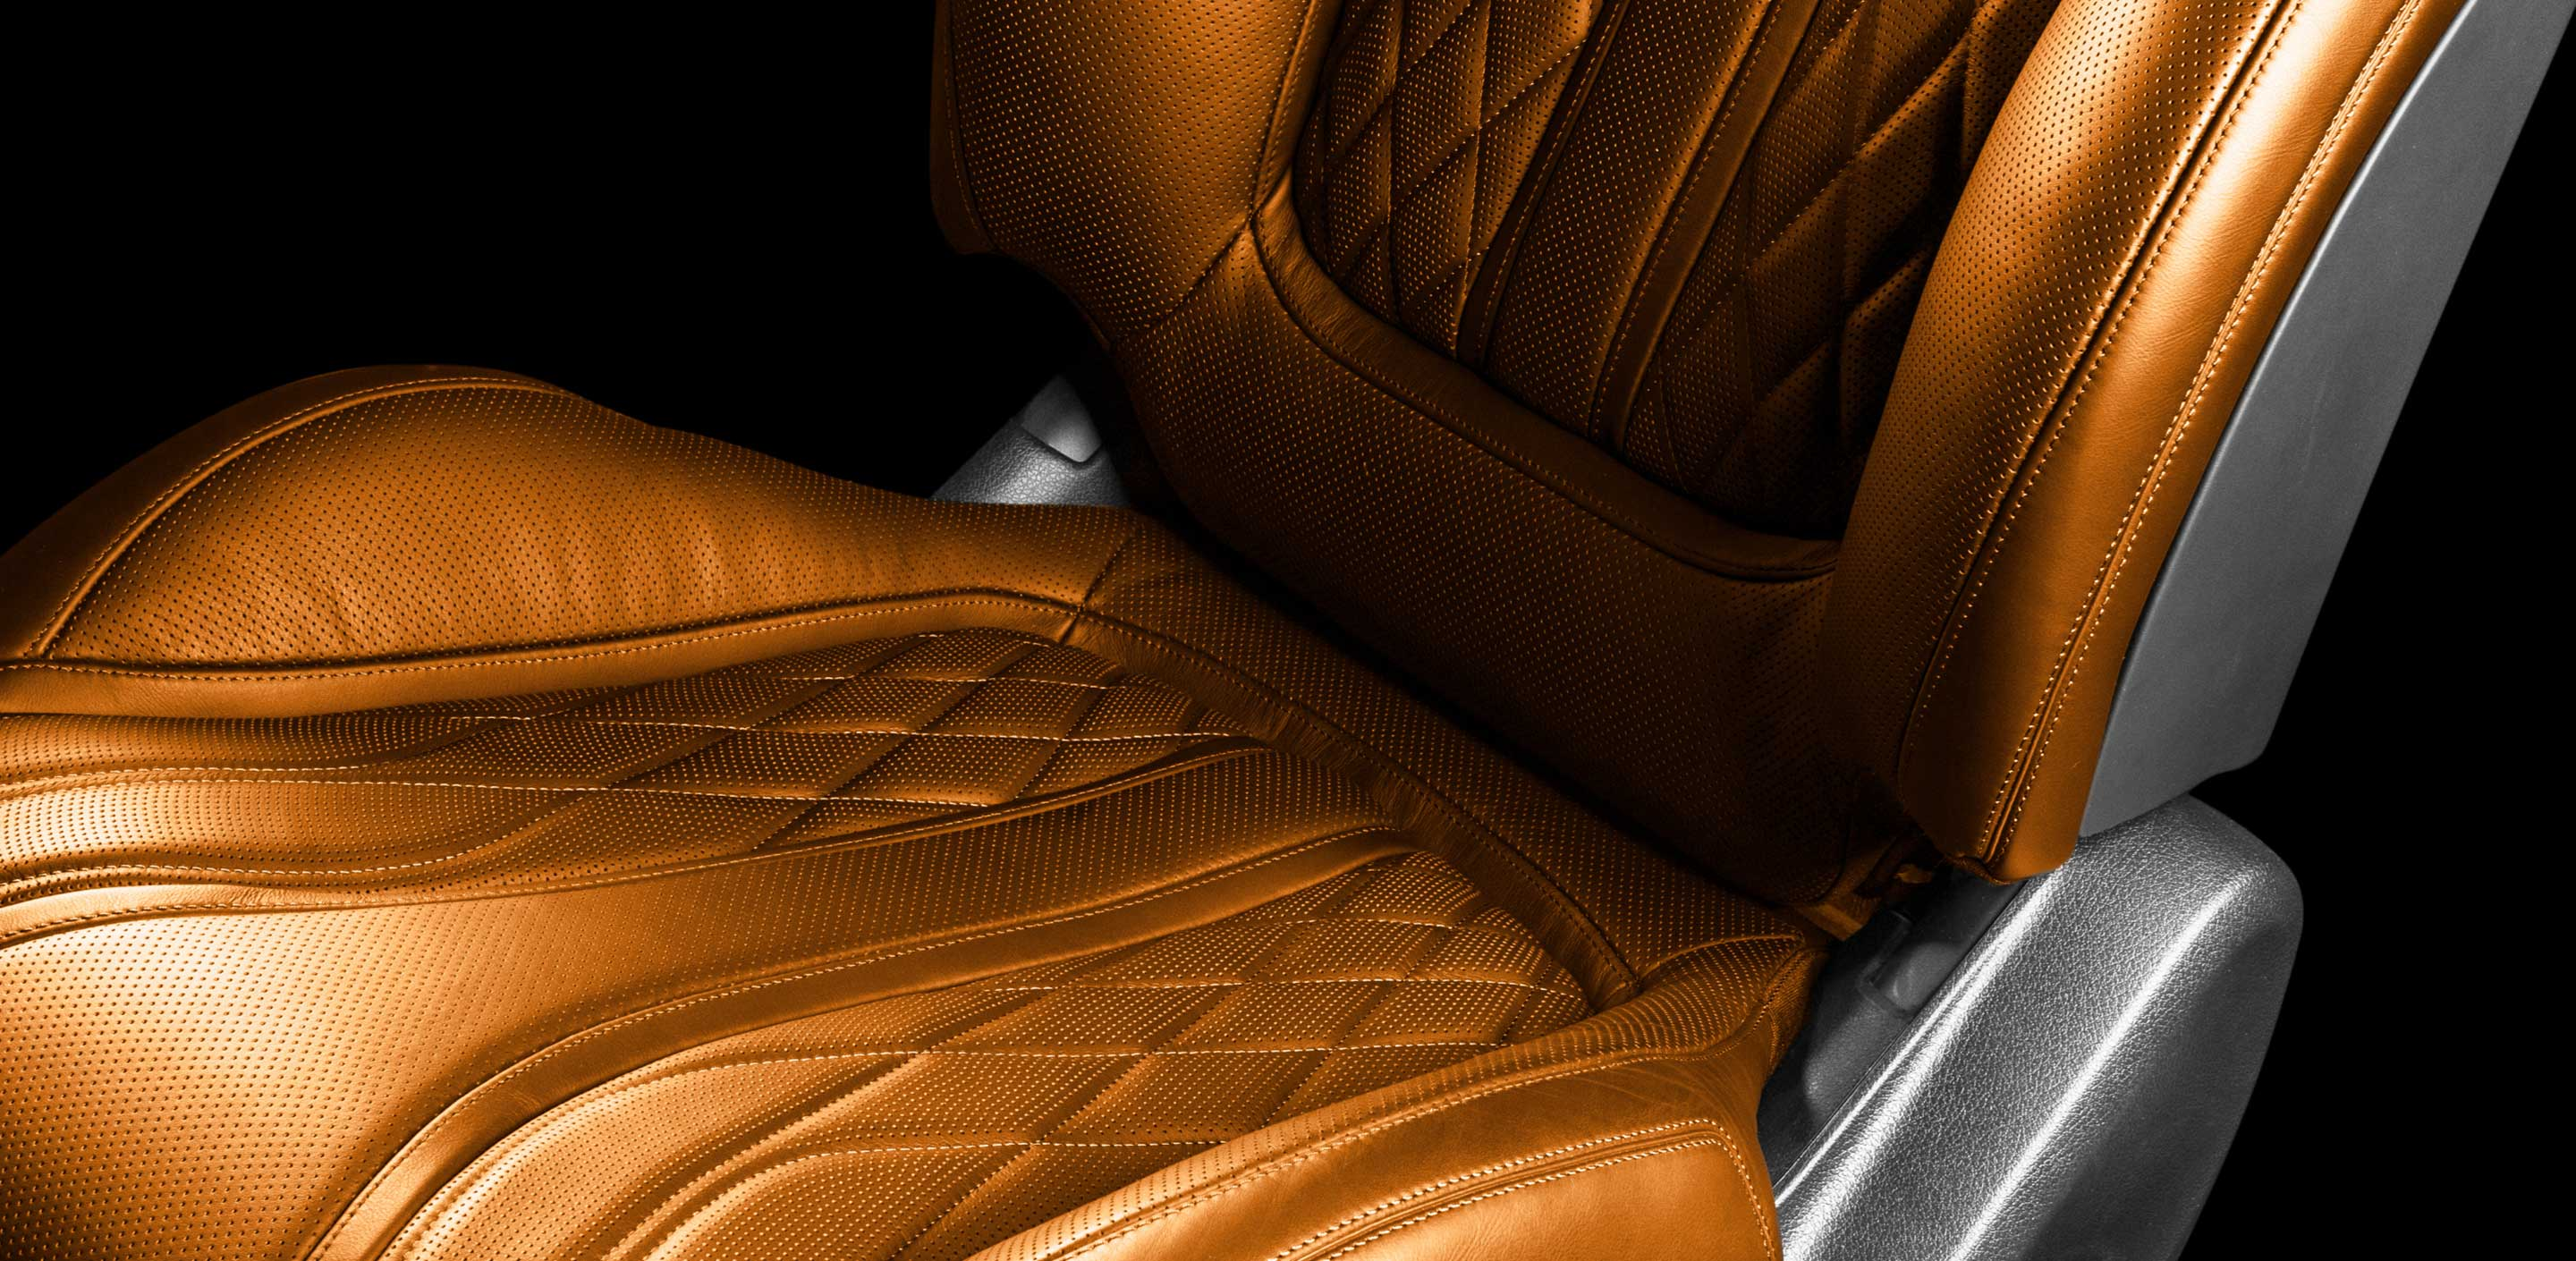 Advantages of Perforated Leather